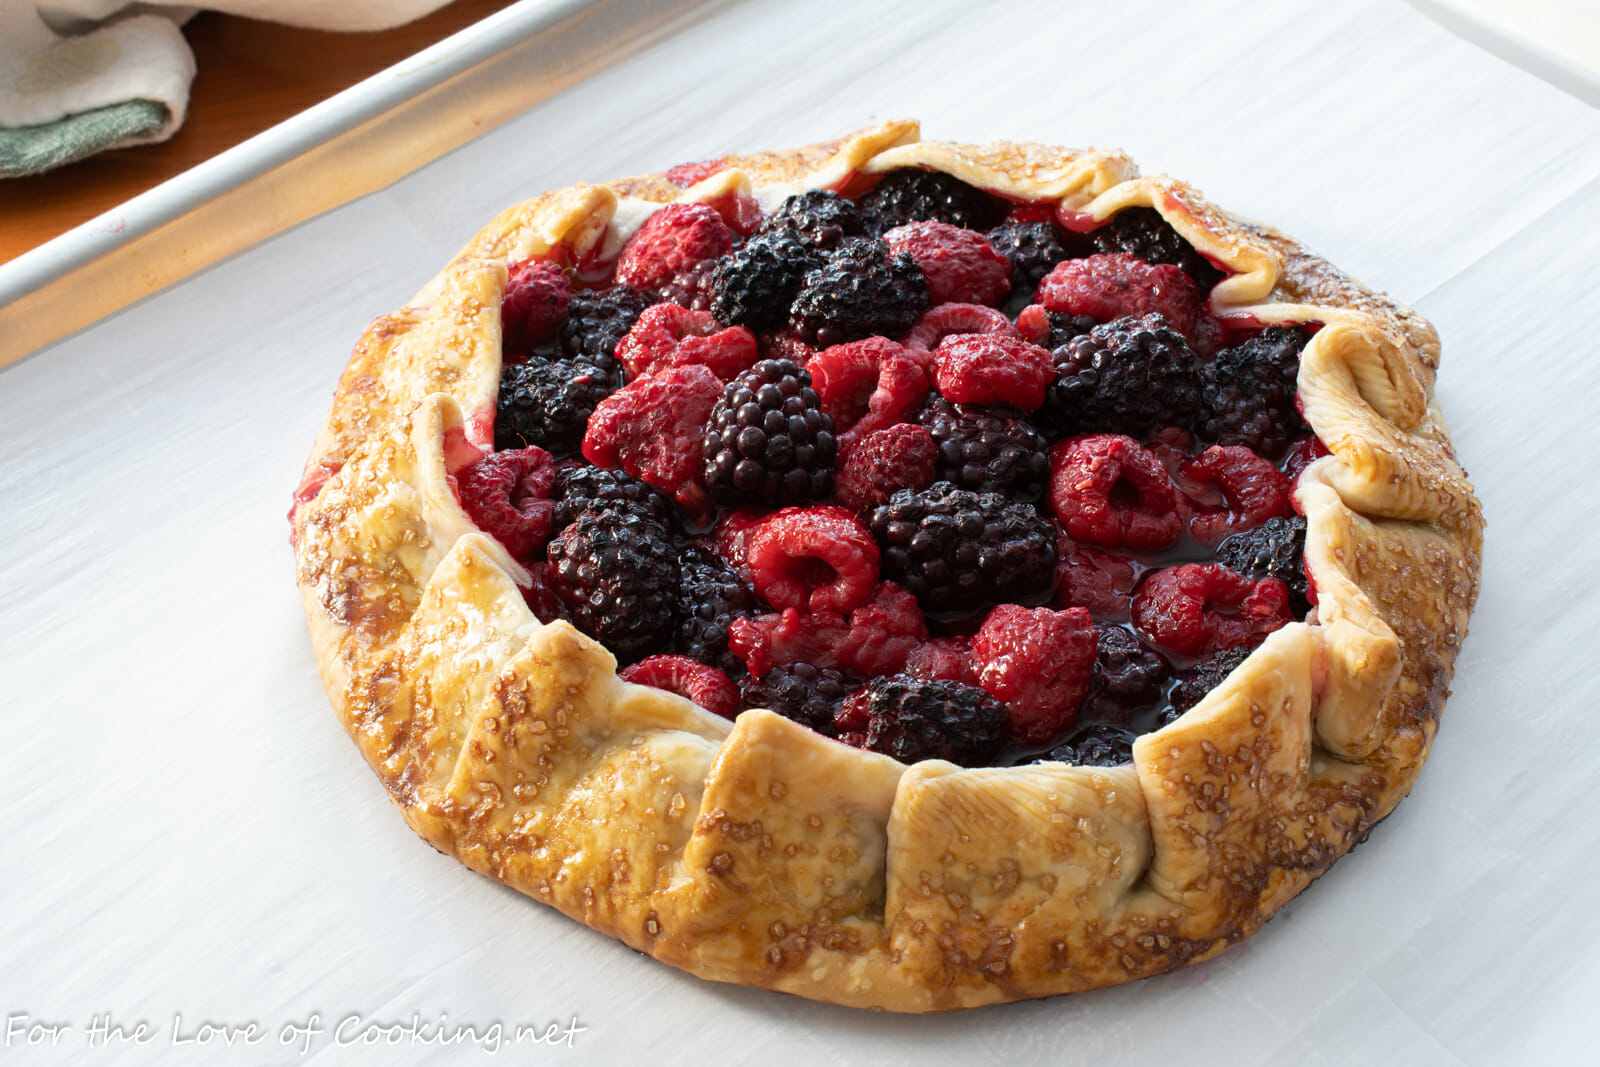 Raspberry and Blackberry Galette with Lemon Whipped Cream